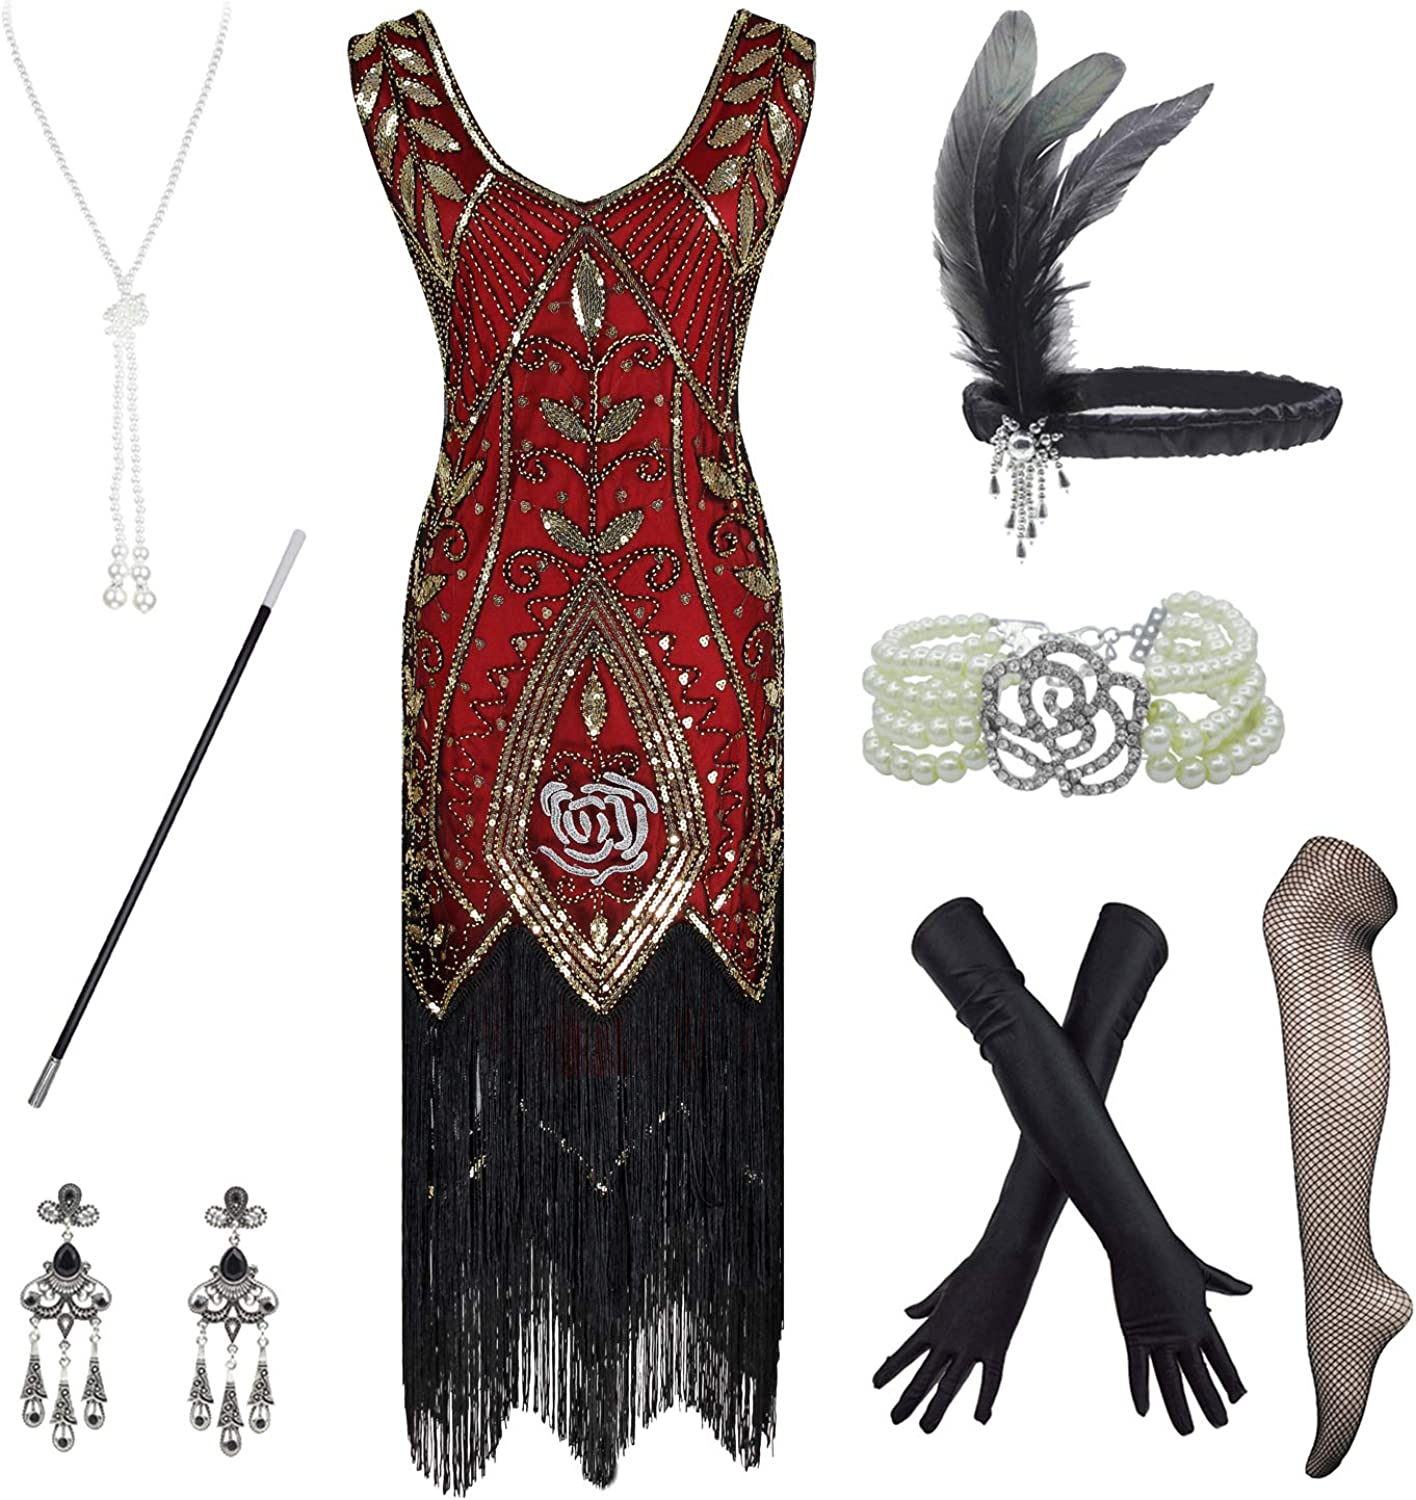 Women's Roaring 20s V-Neck Gatsby SEAL limited product Dresses Flapper Accessori with Regular store